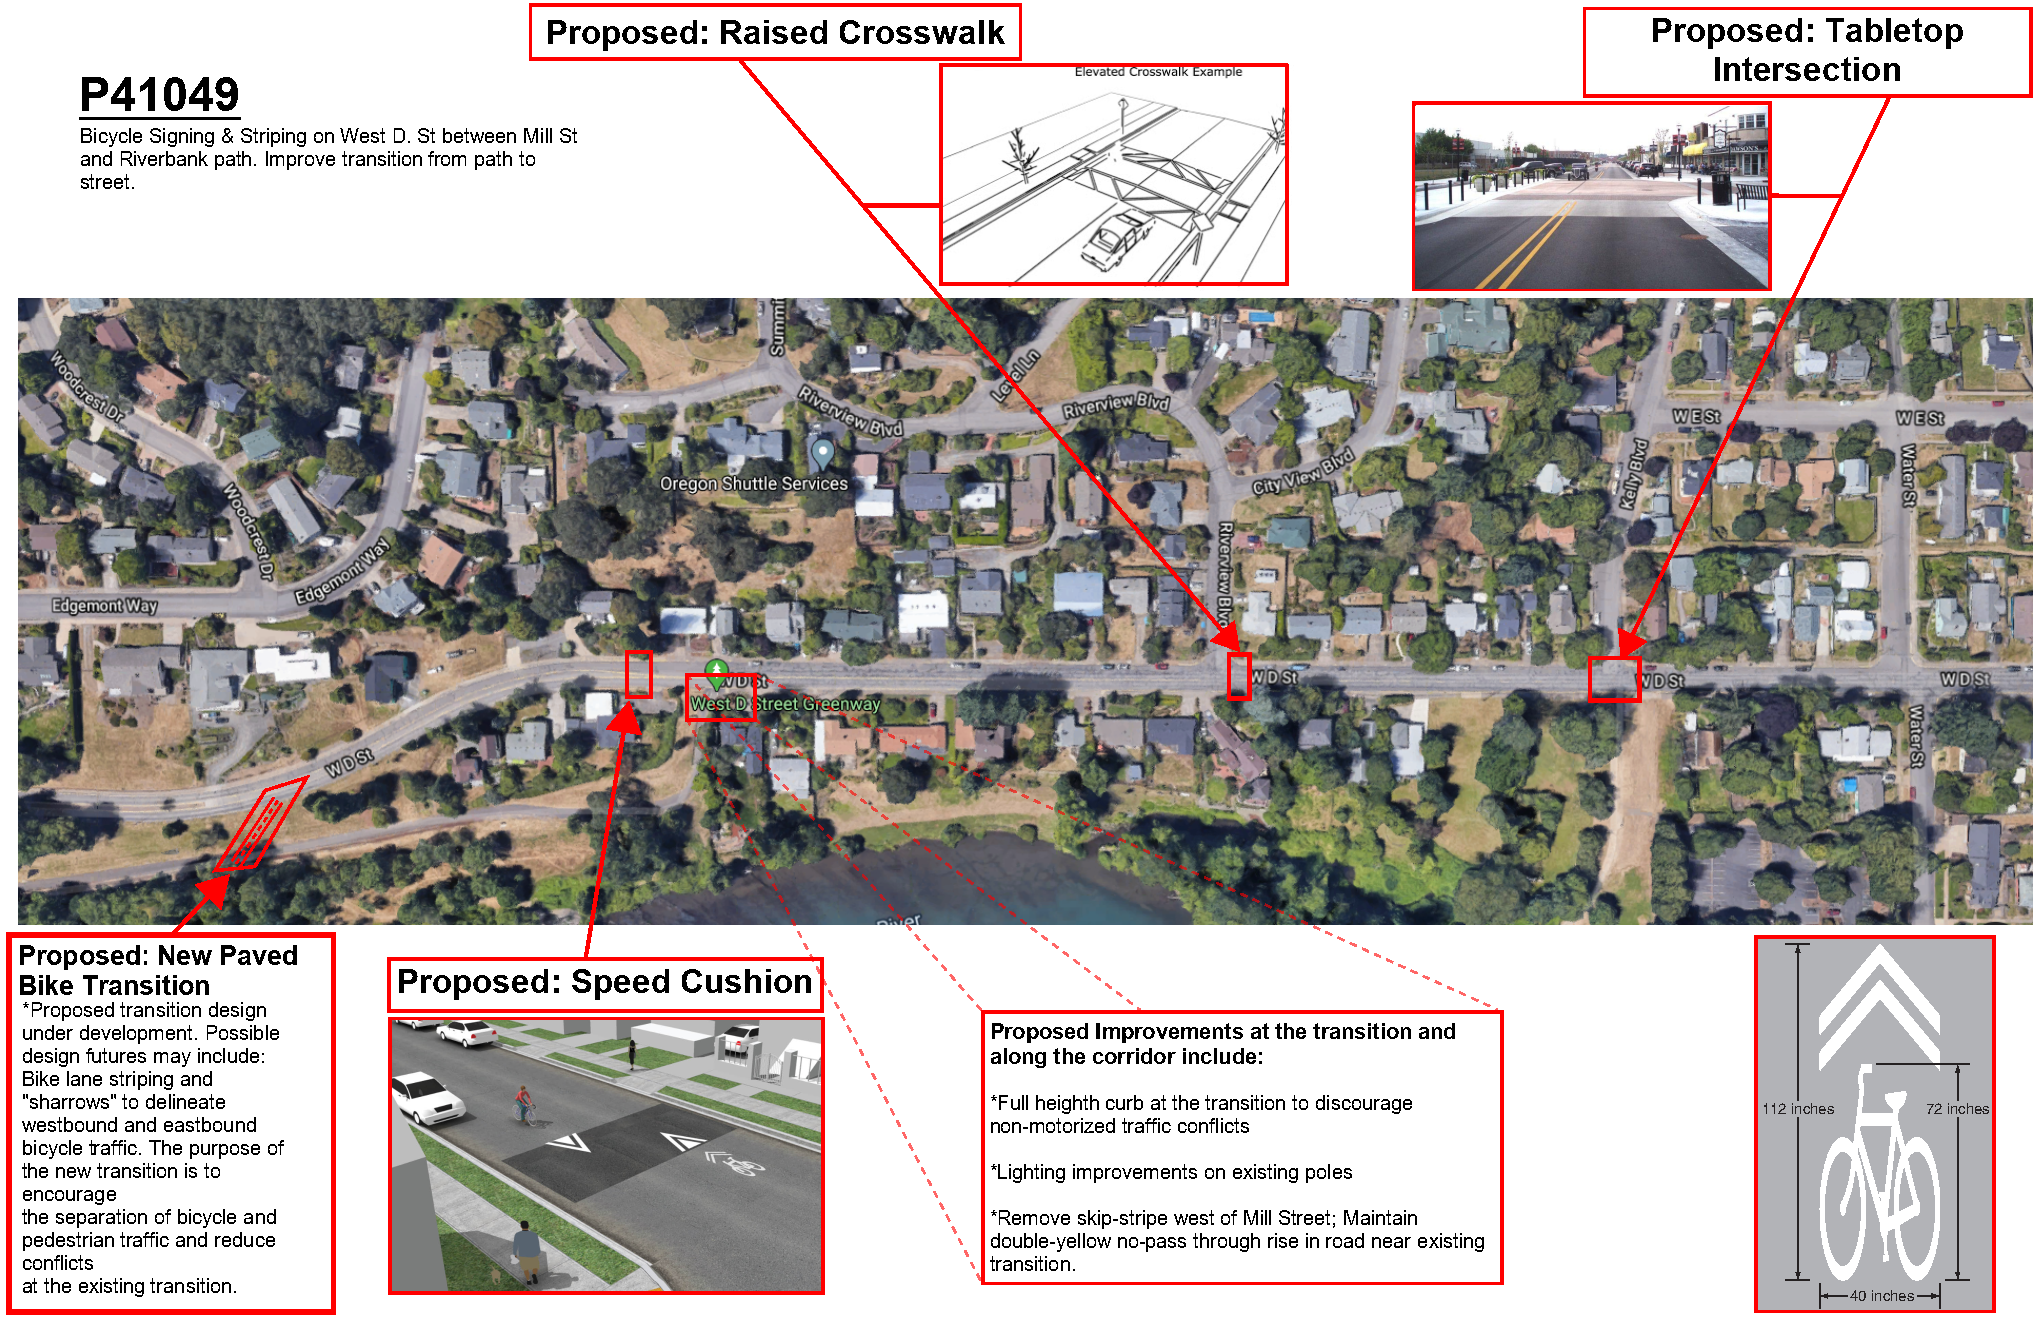 Diagram of concept for street calming measures shared with BPAC in June 2020.